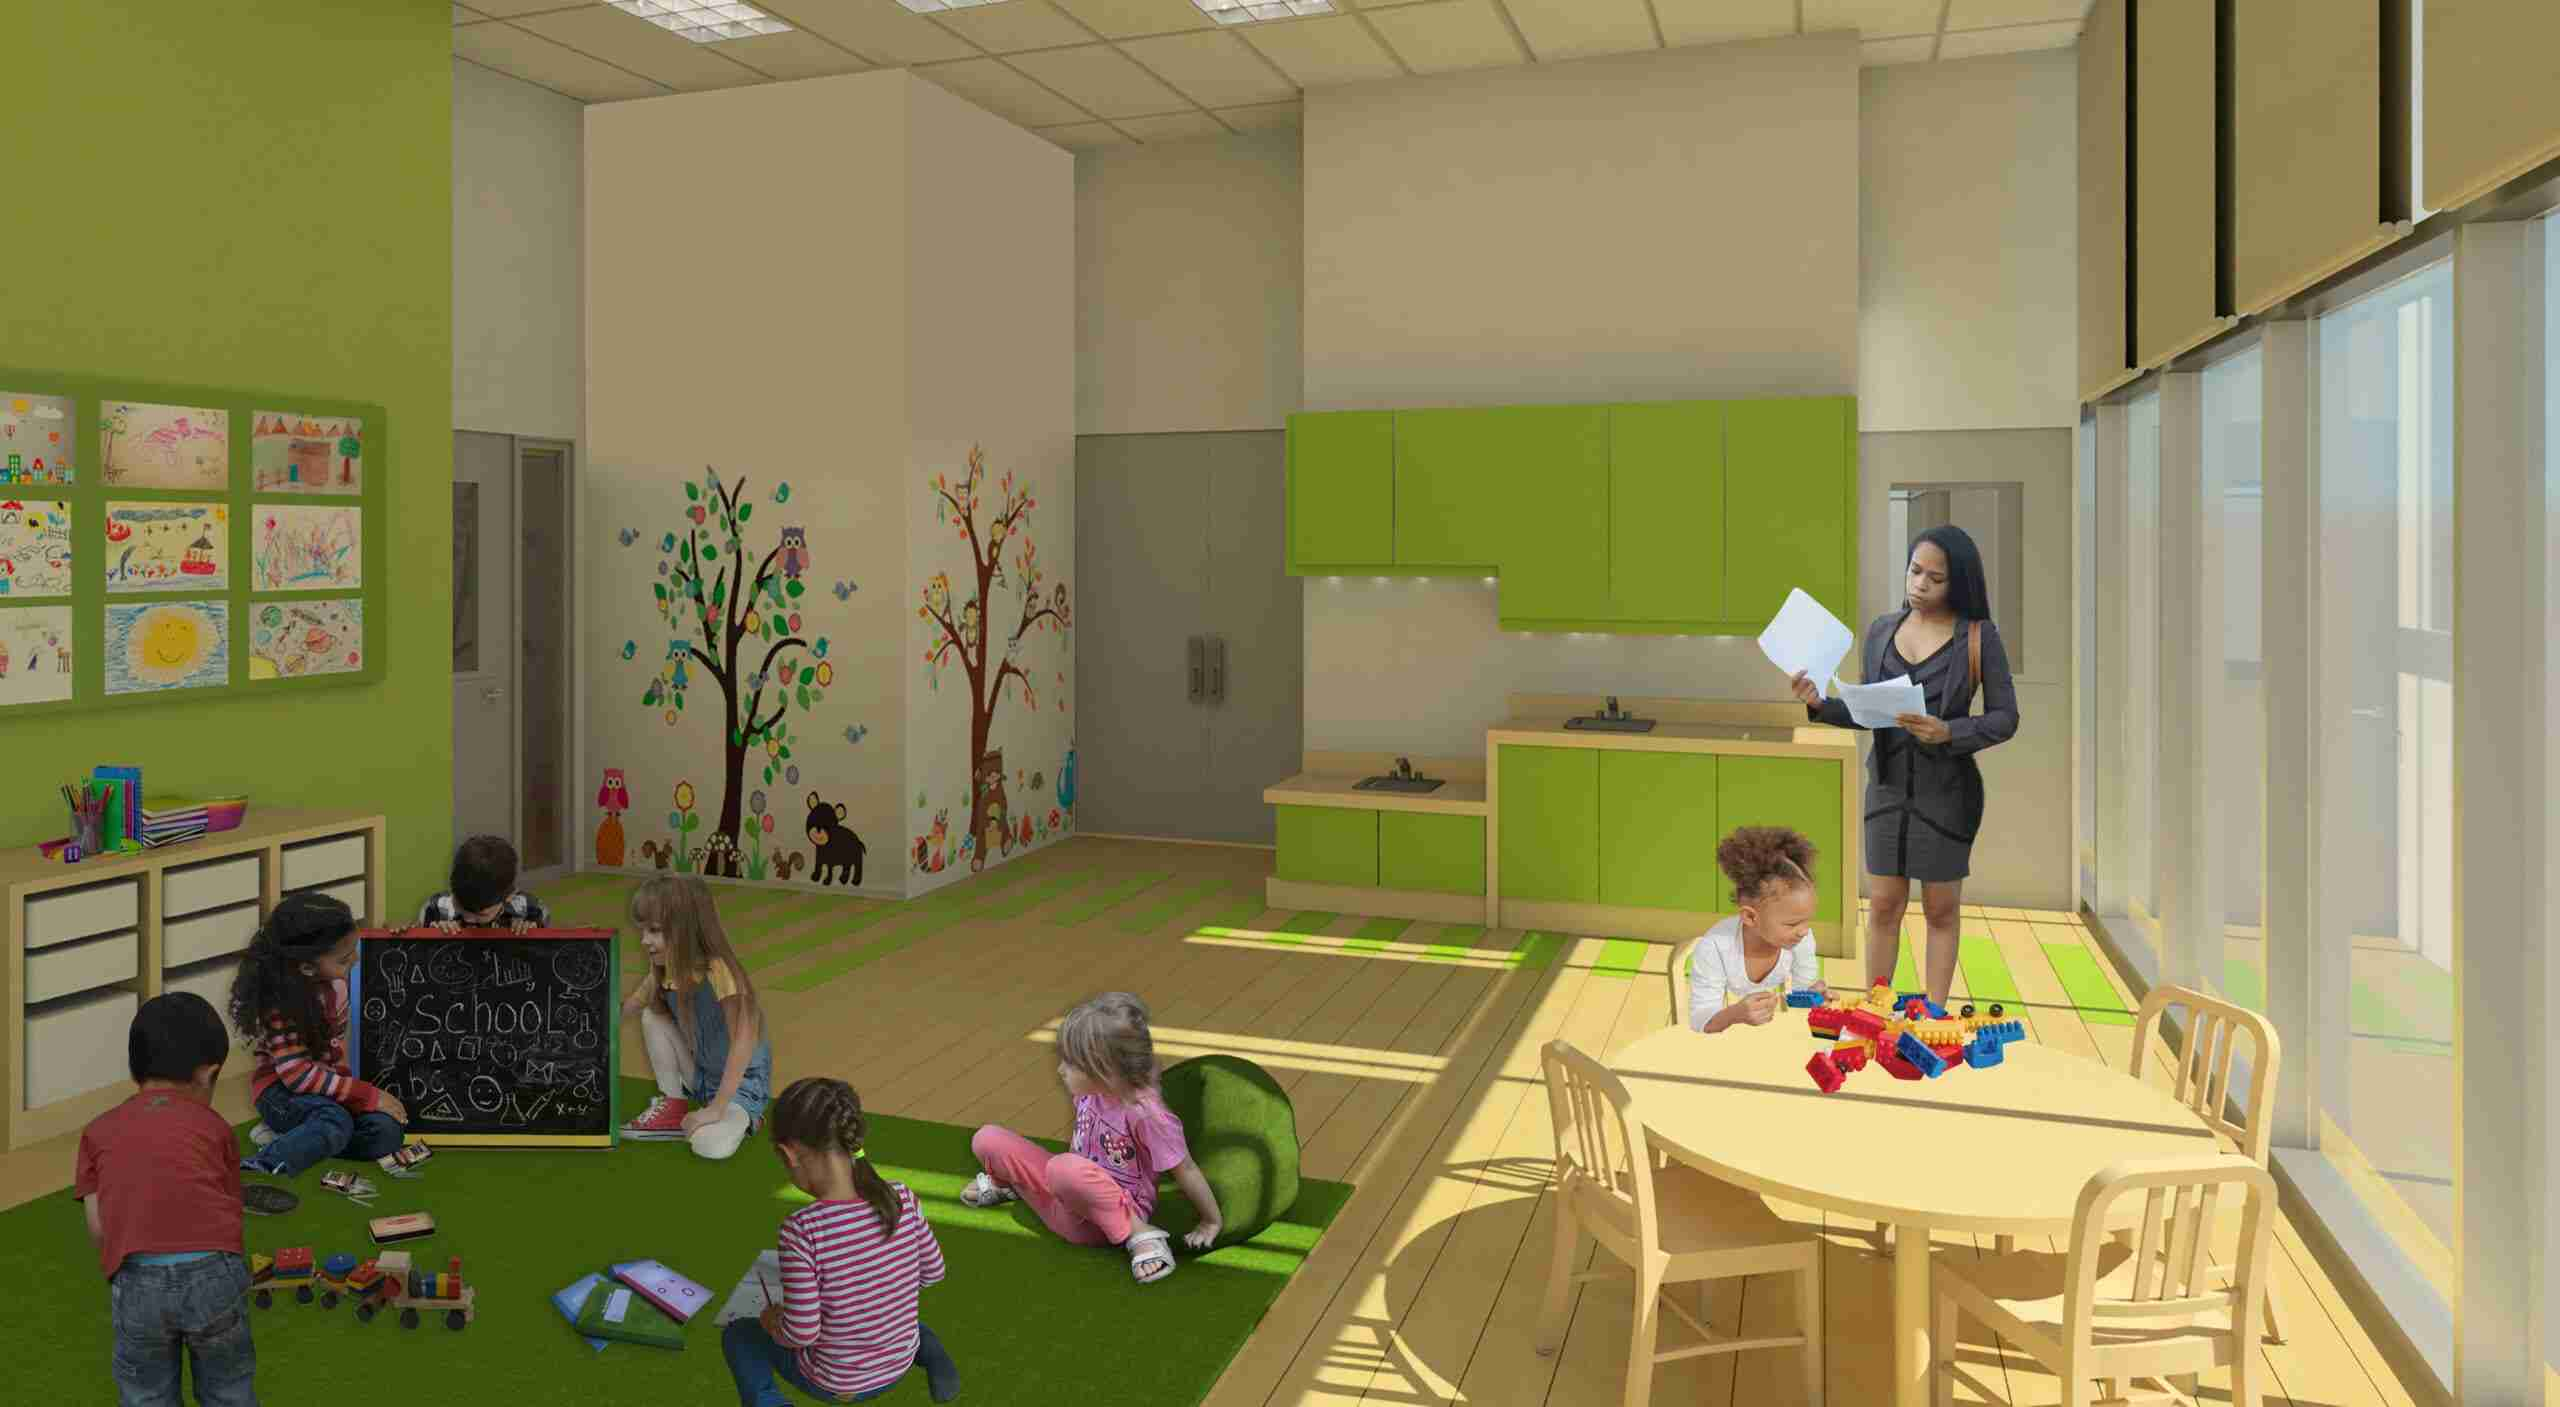 Play room showing preschoolers playing with educational toys